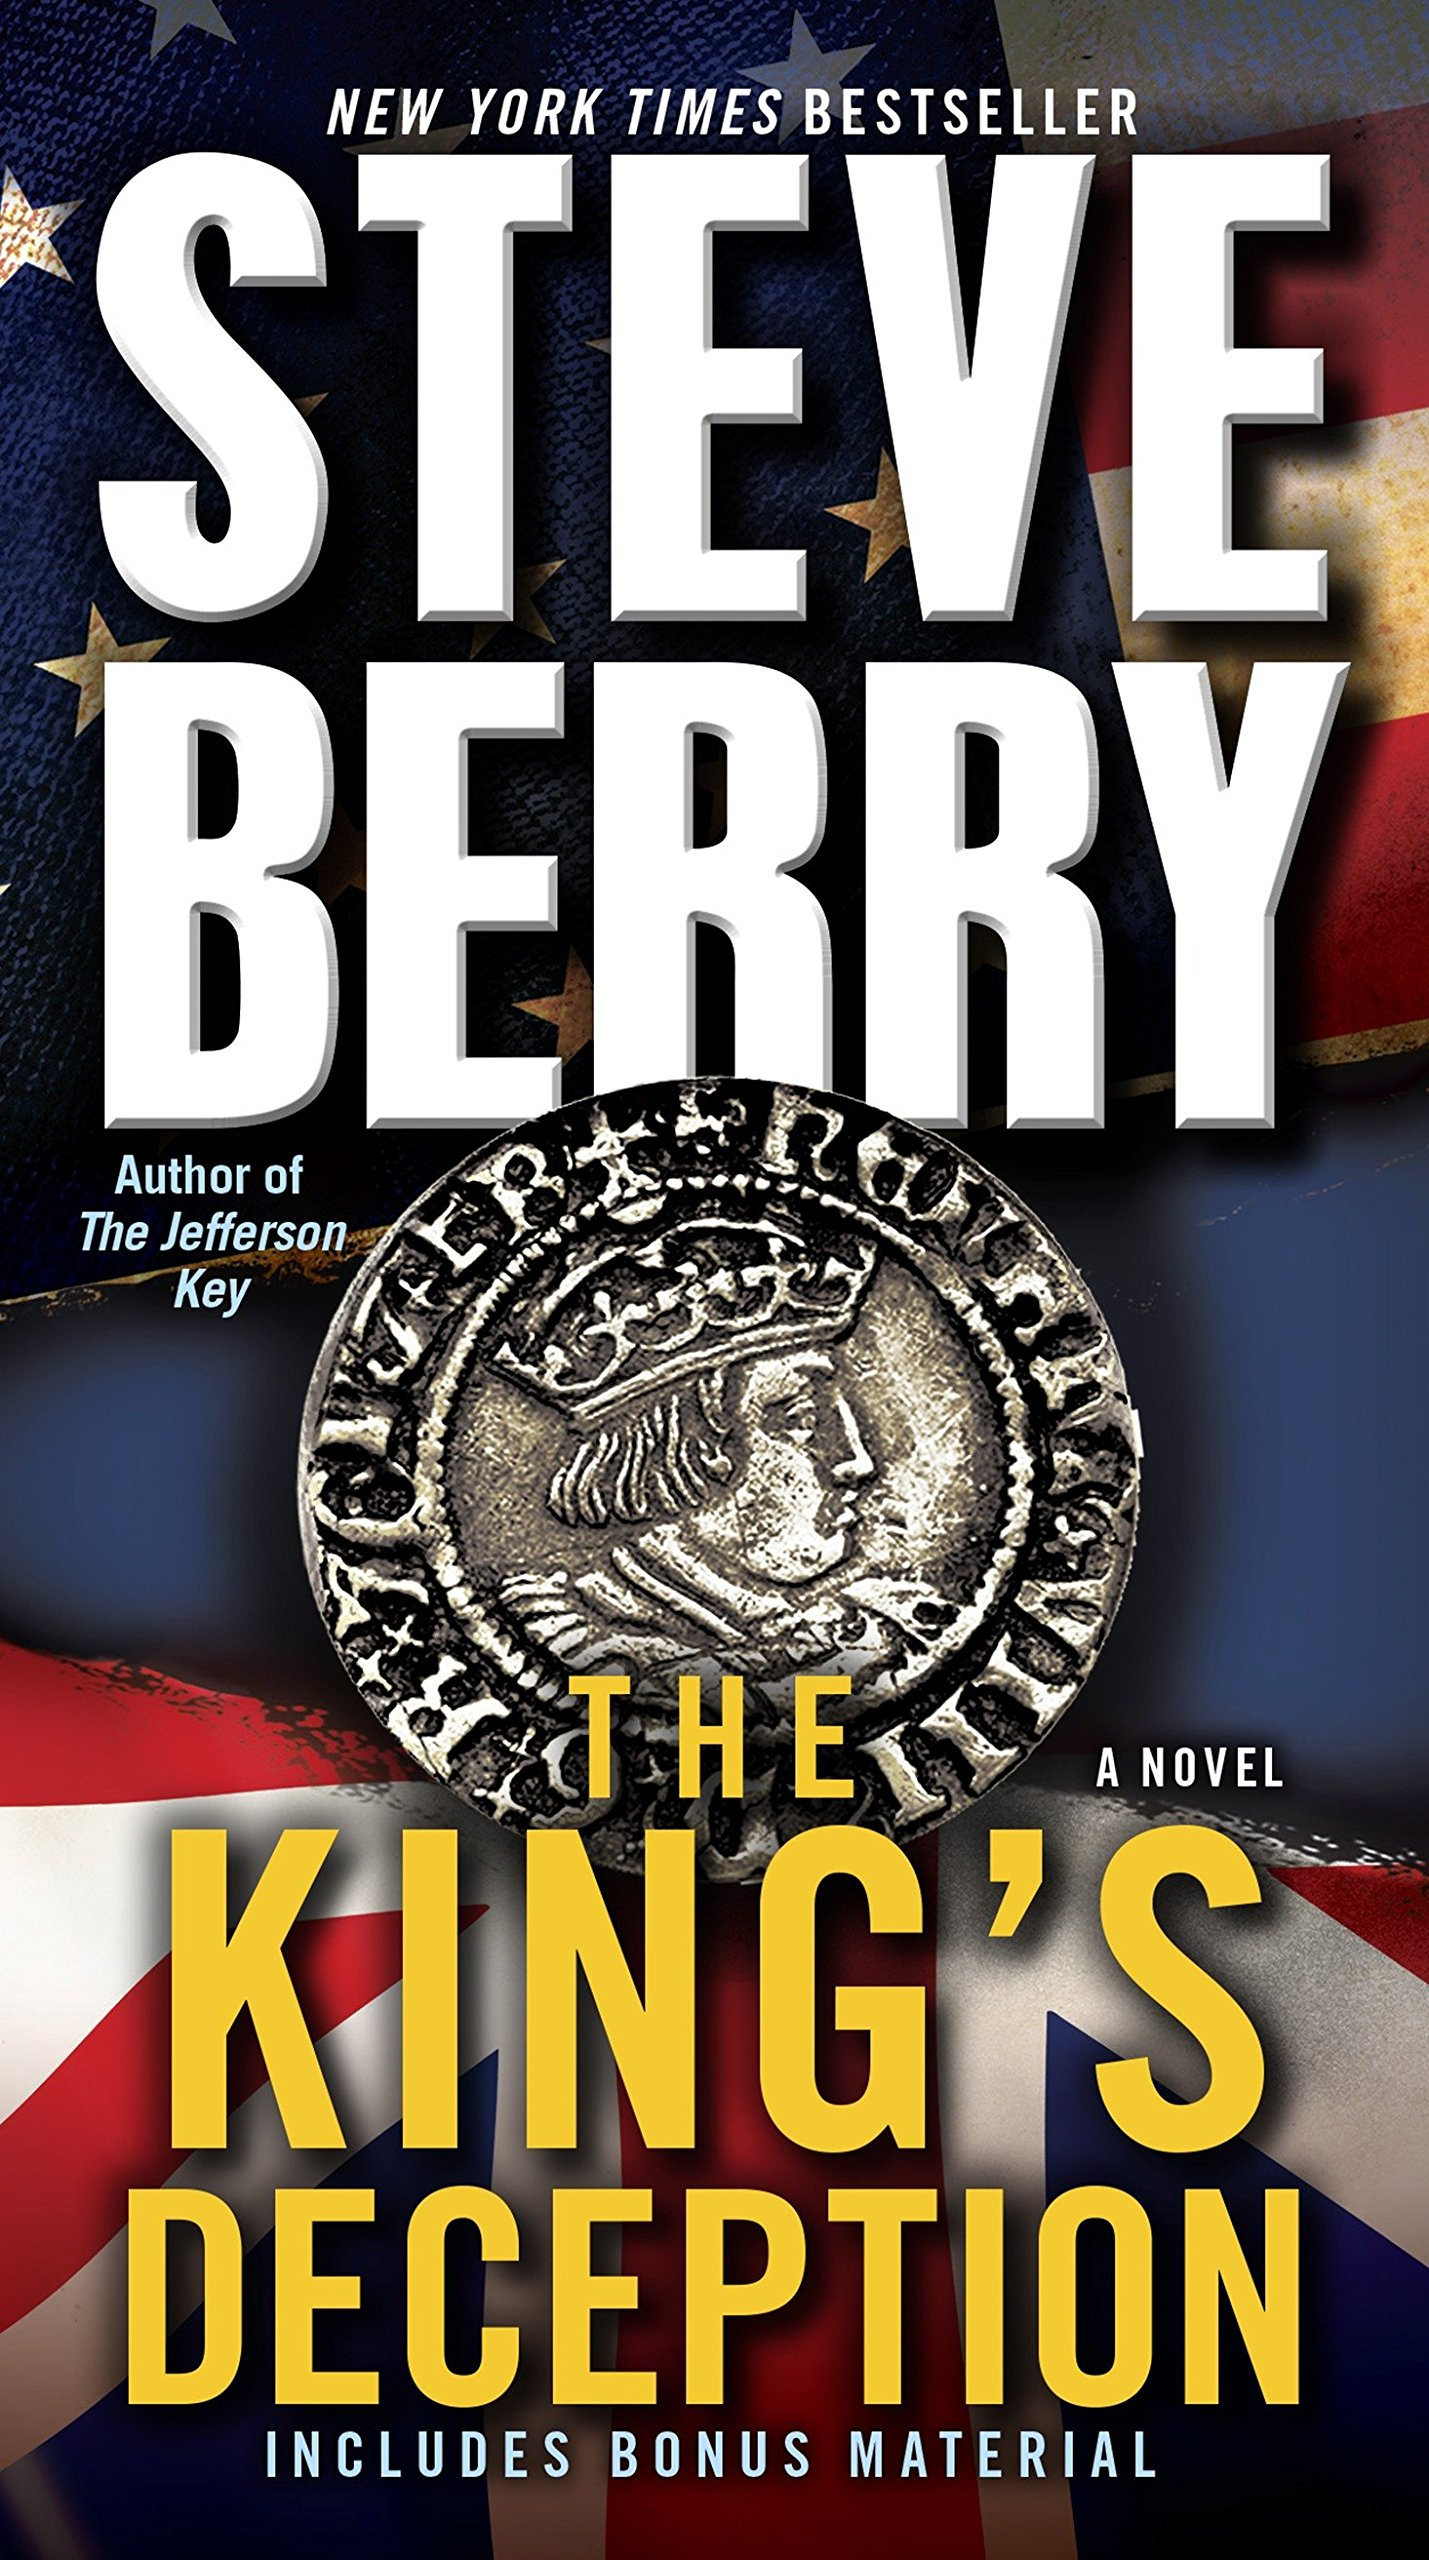 Amazon.com: The King's Deception (Cotton Malone) (9780345526557): Steve  Berry: Books